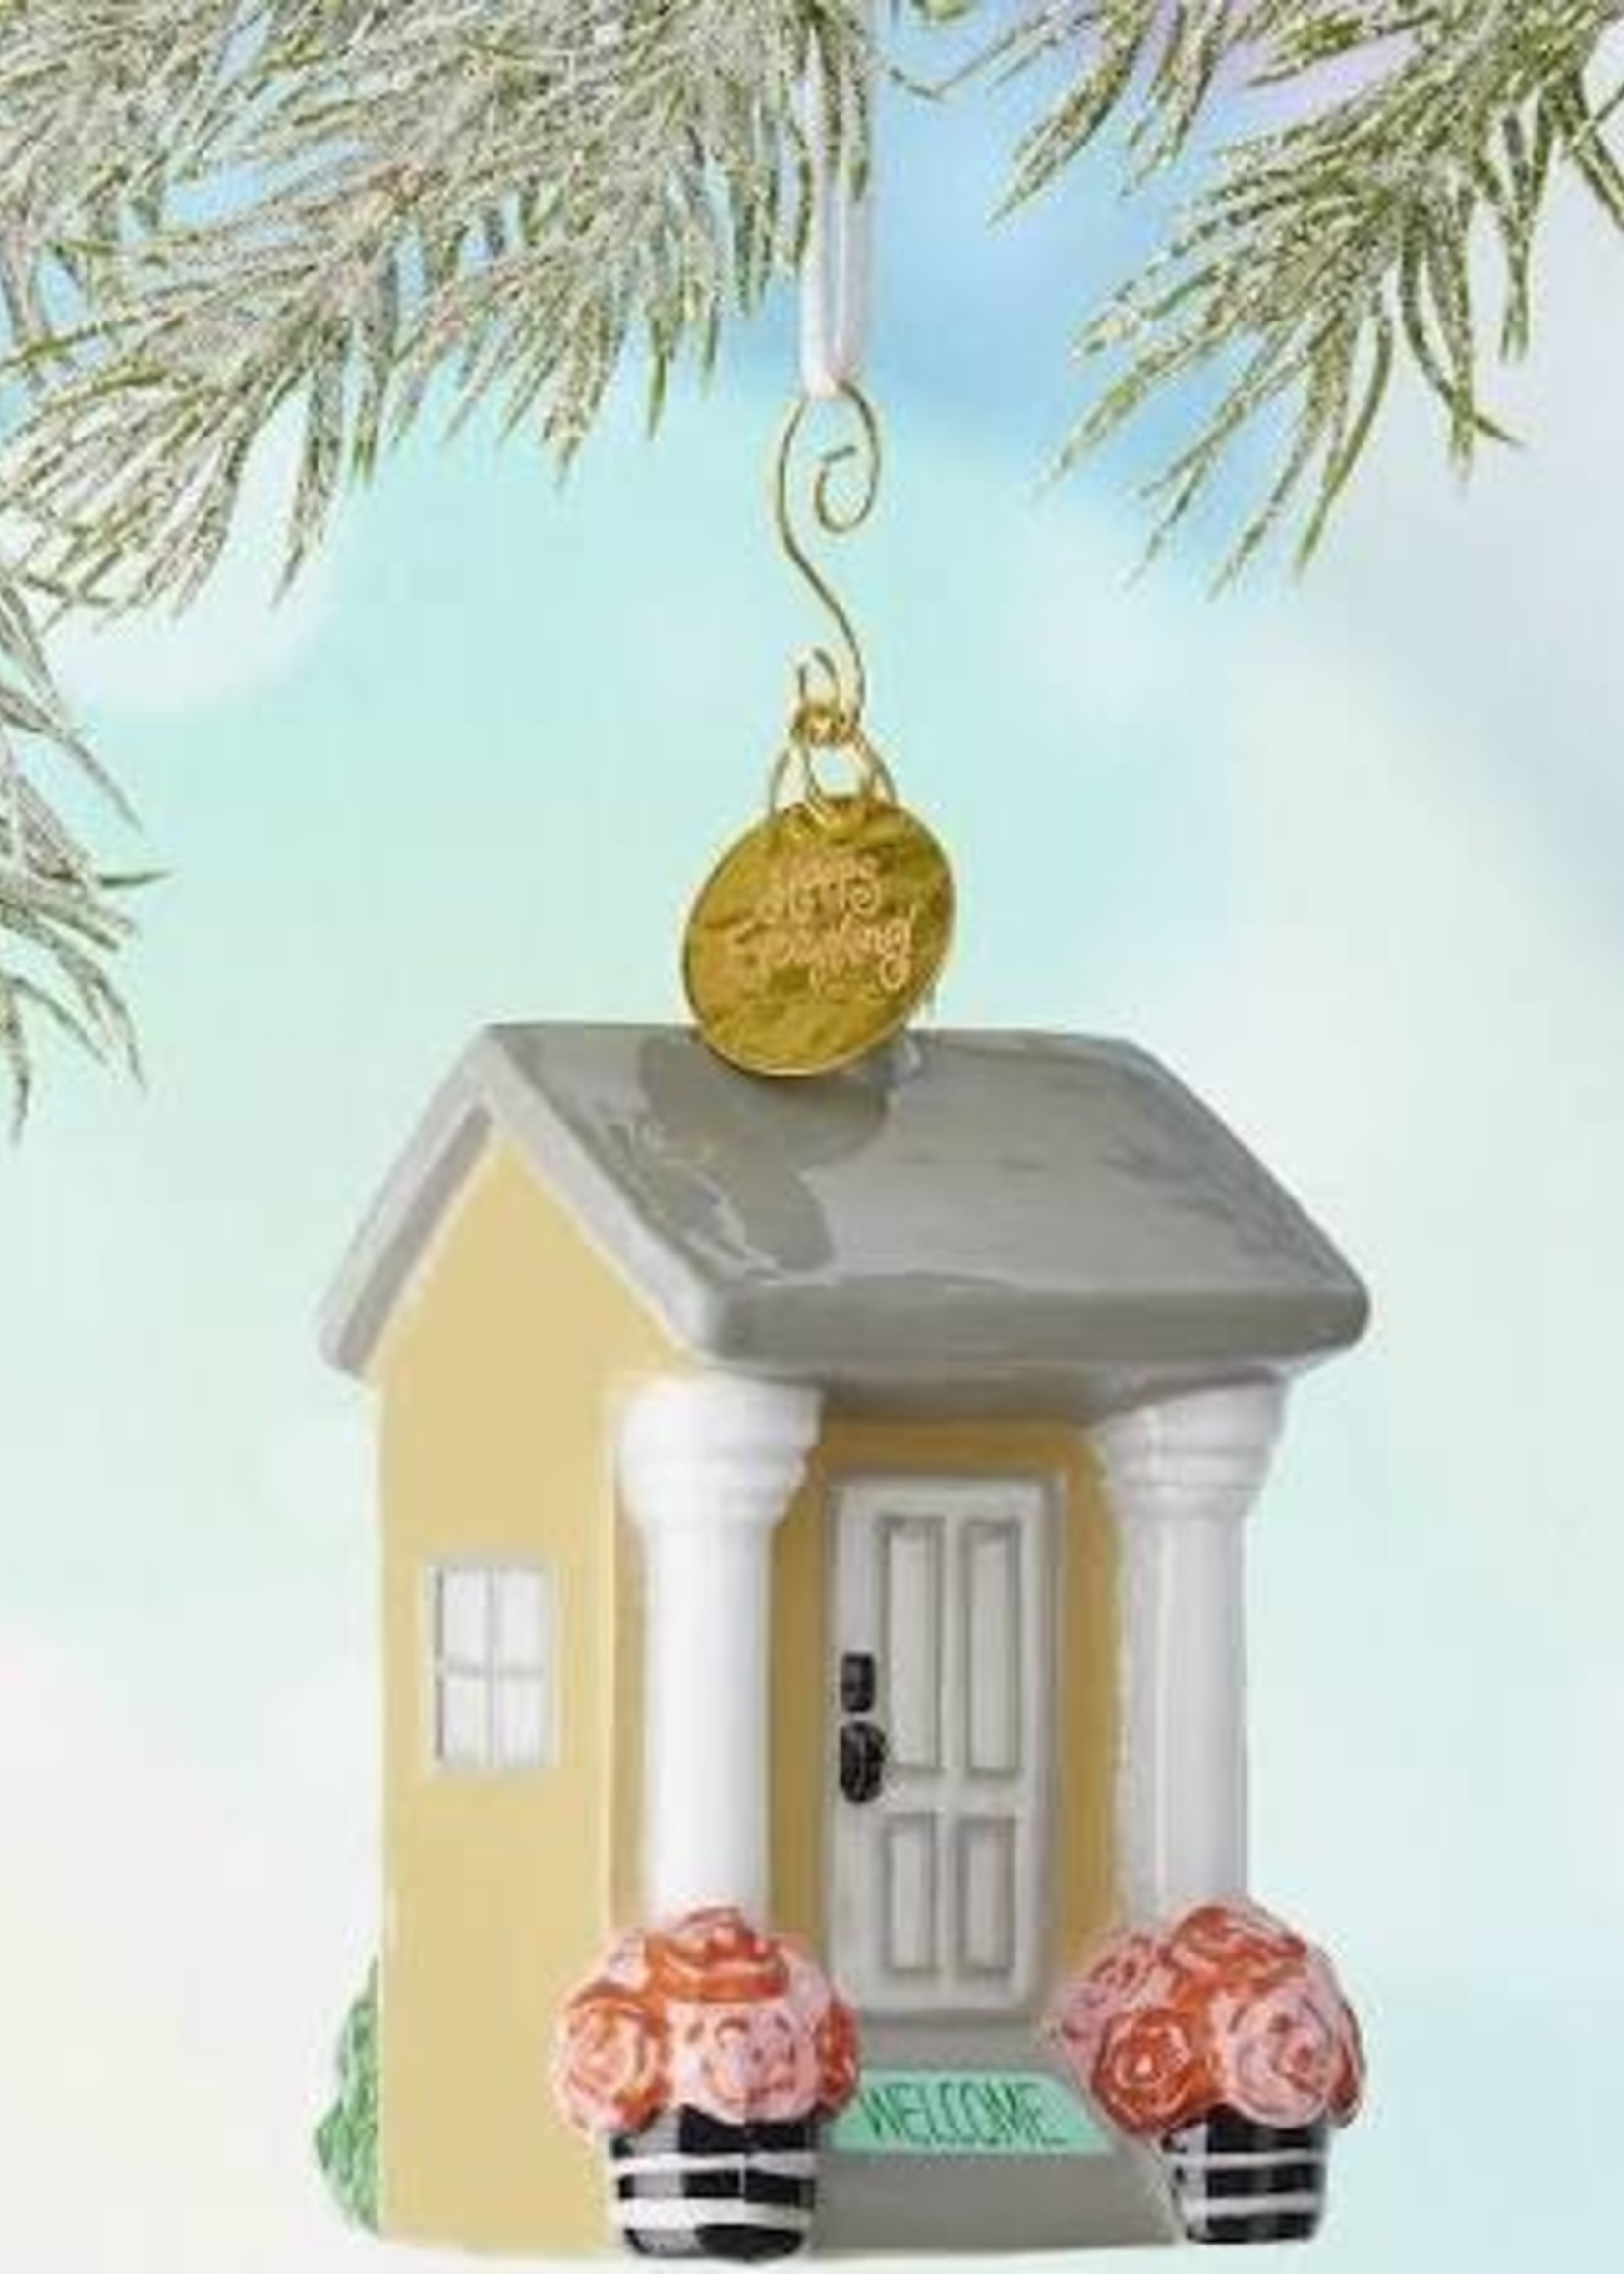 Coton Colors House Welcome Shaped Ornament